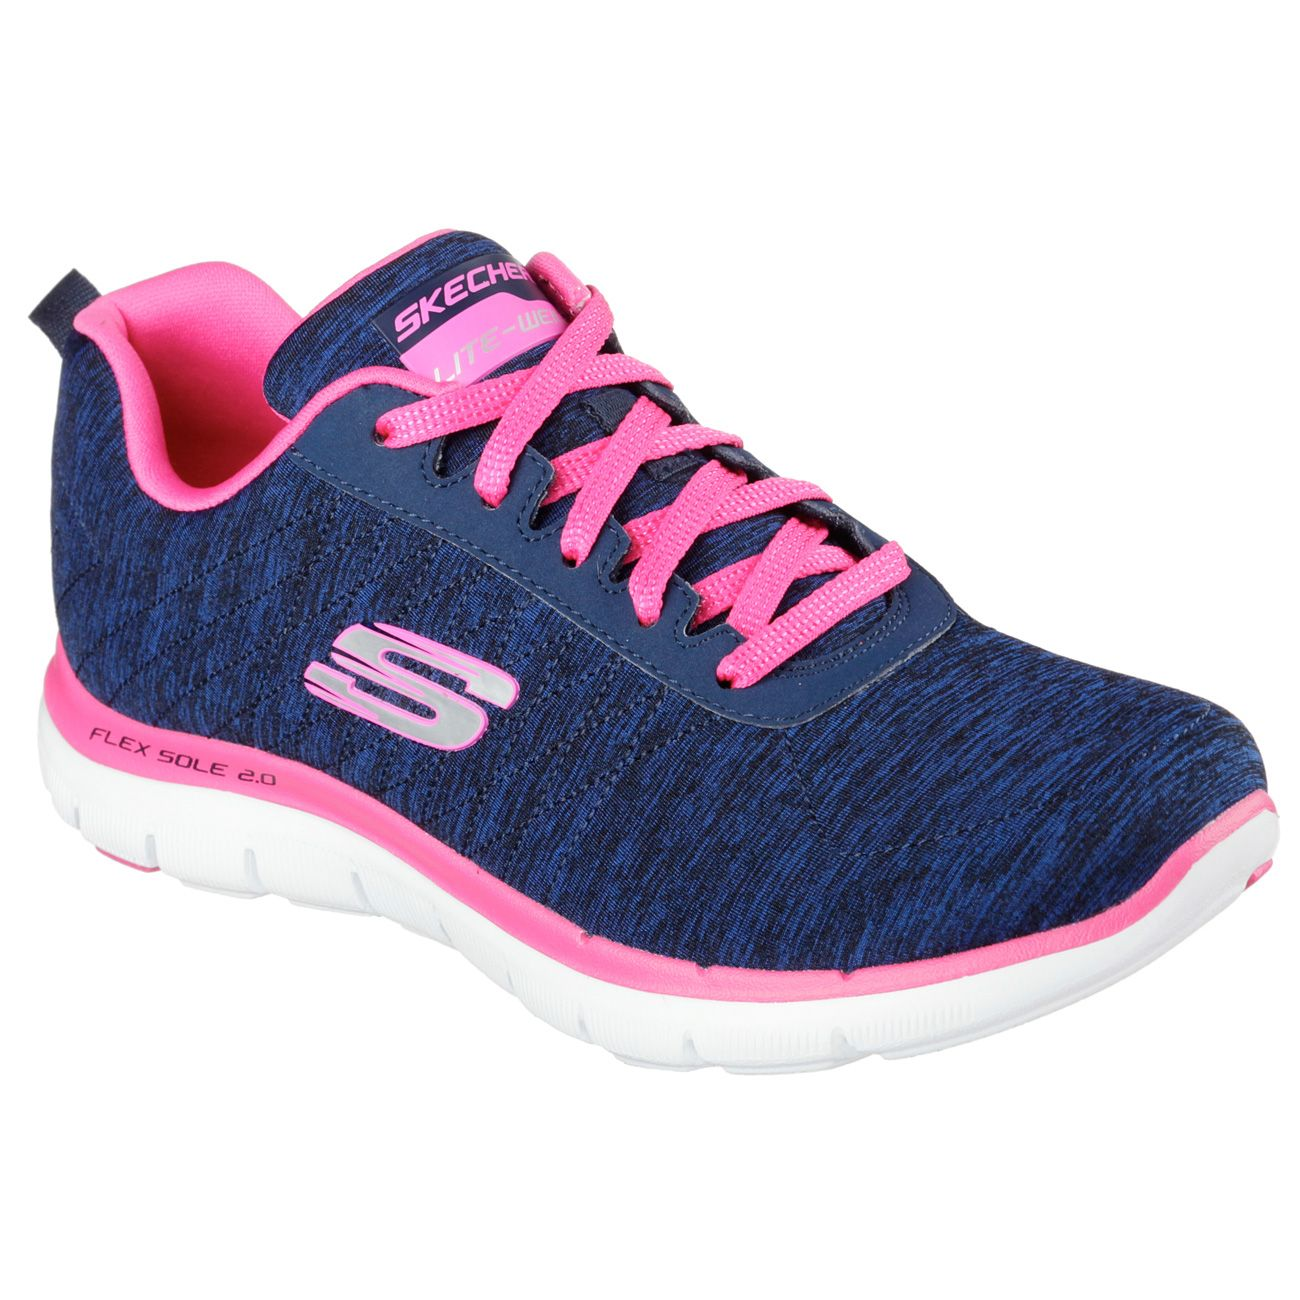 Women's Running Shoes Take your running to the next level in new running shoes for women, here at Finish Line. From weekend warriors to marathoners and everyone in between, there's a perfect women's running shoe for you.